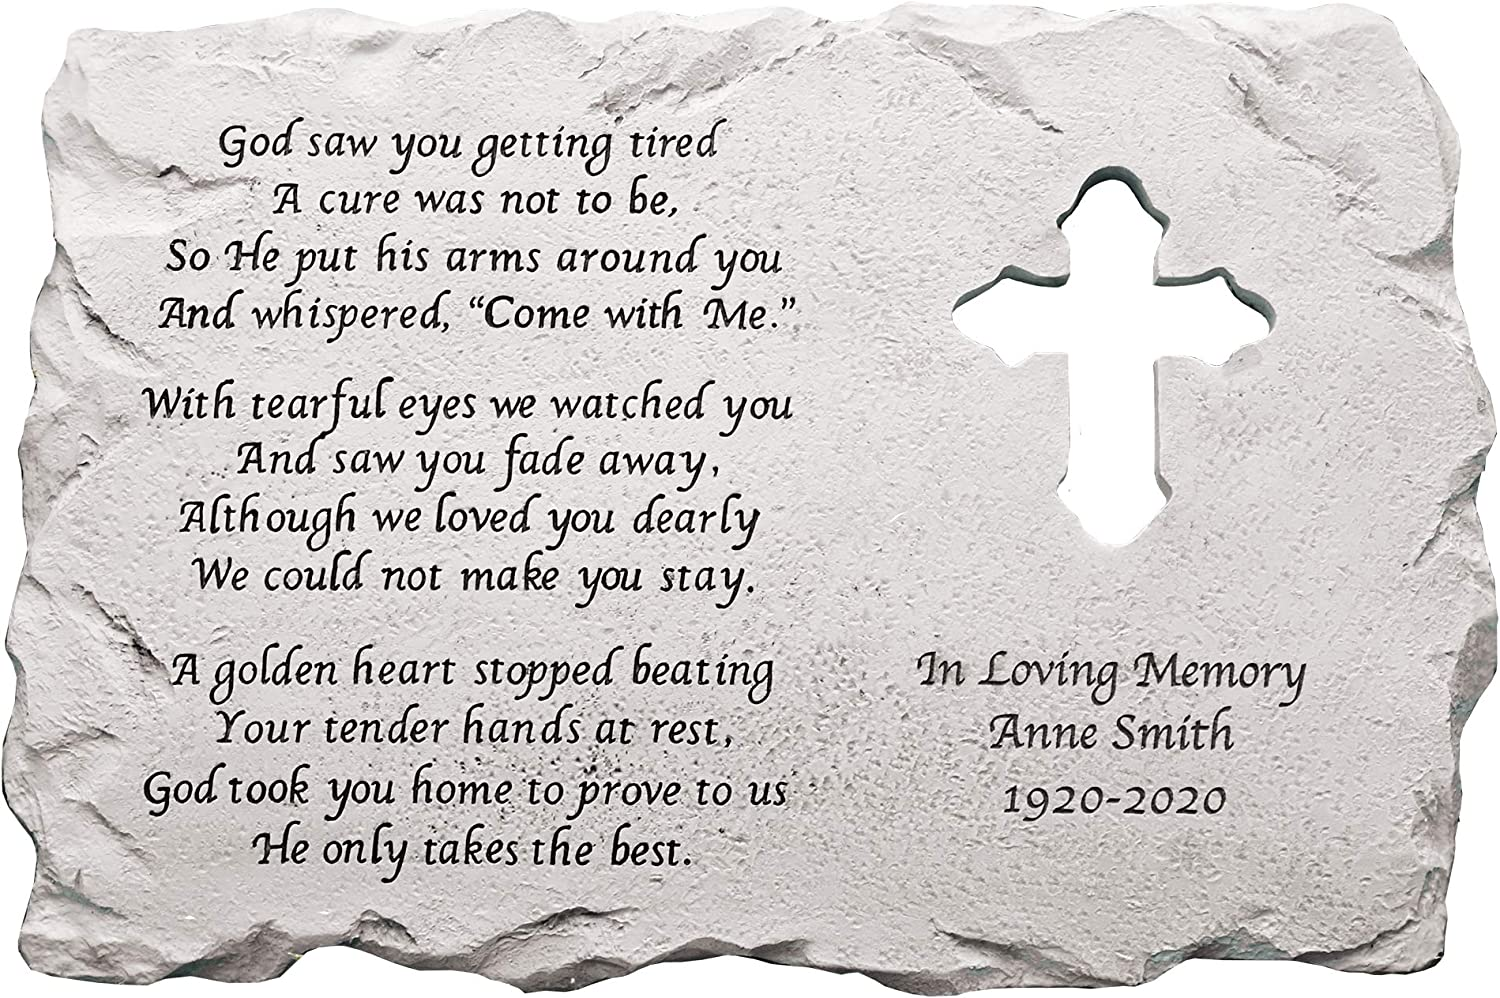 Let's Make Memories Personalized Memorial Cross Stepping Stone - Sympathy Garden Marker - Durable, Weather-Resistant Cast Resin - Engraved with Loved One's Name & Personalized Condolences